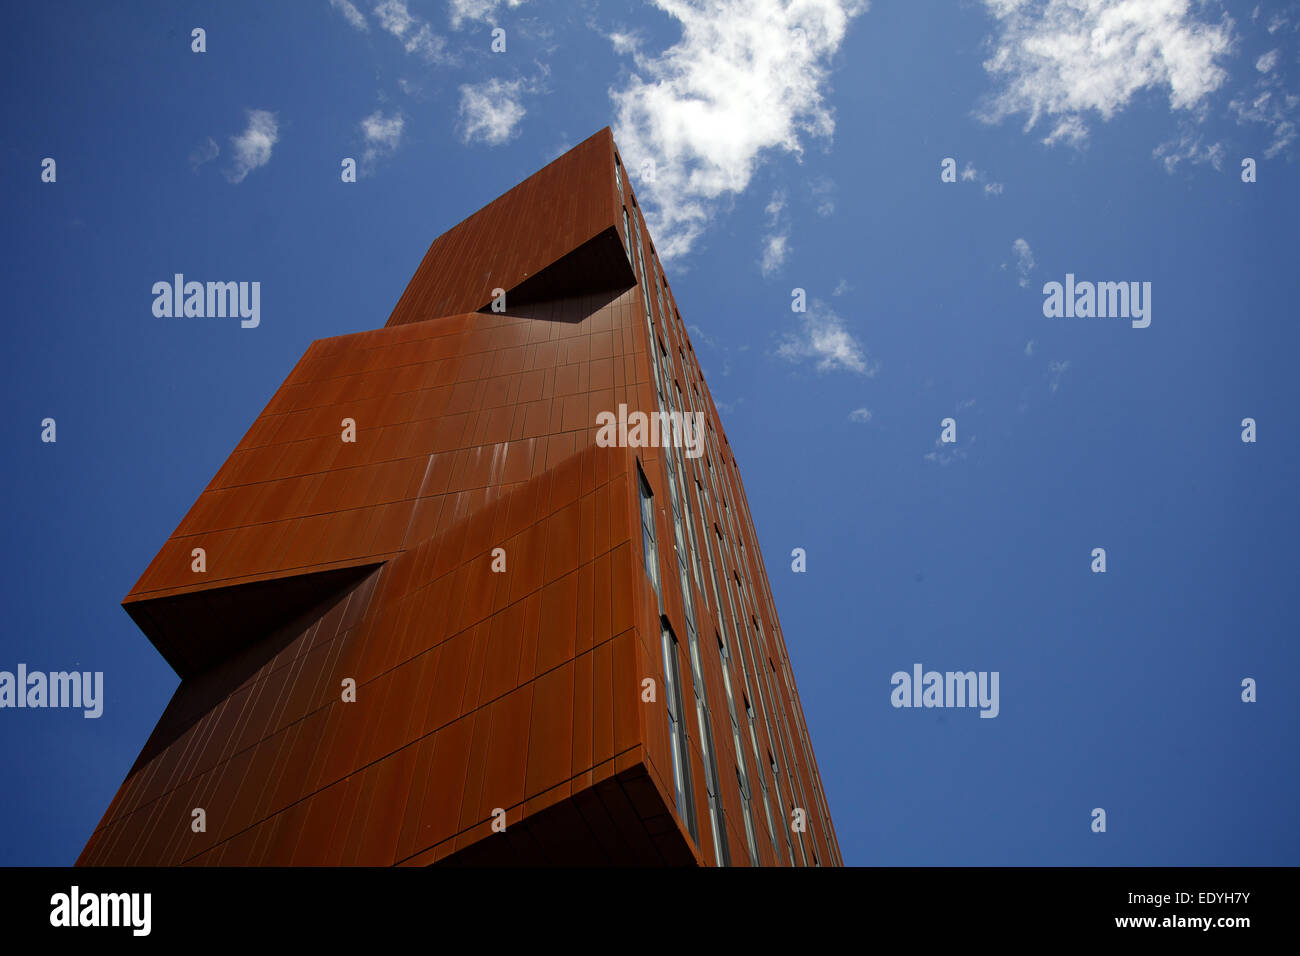 shot of Broadcasting Tower against a blue sky Stock Photo